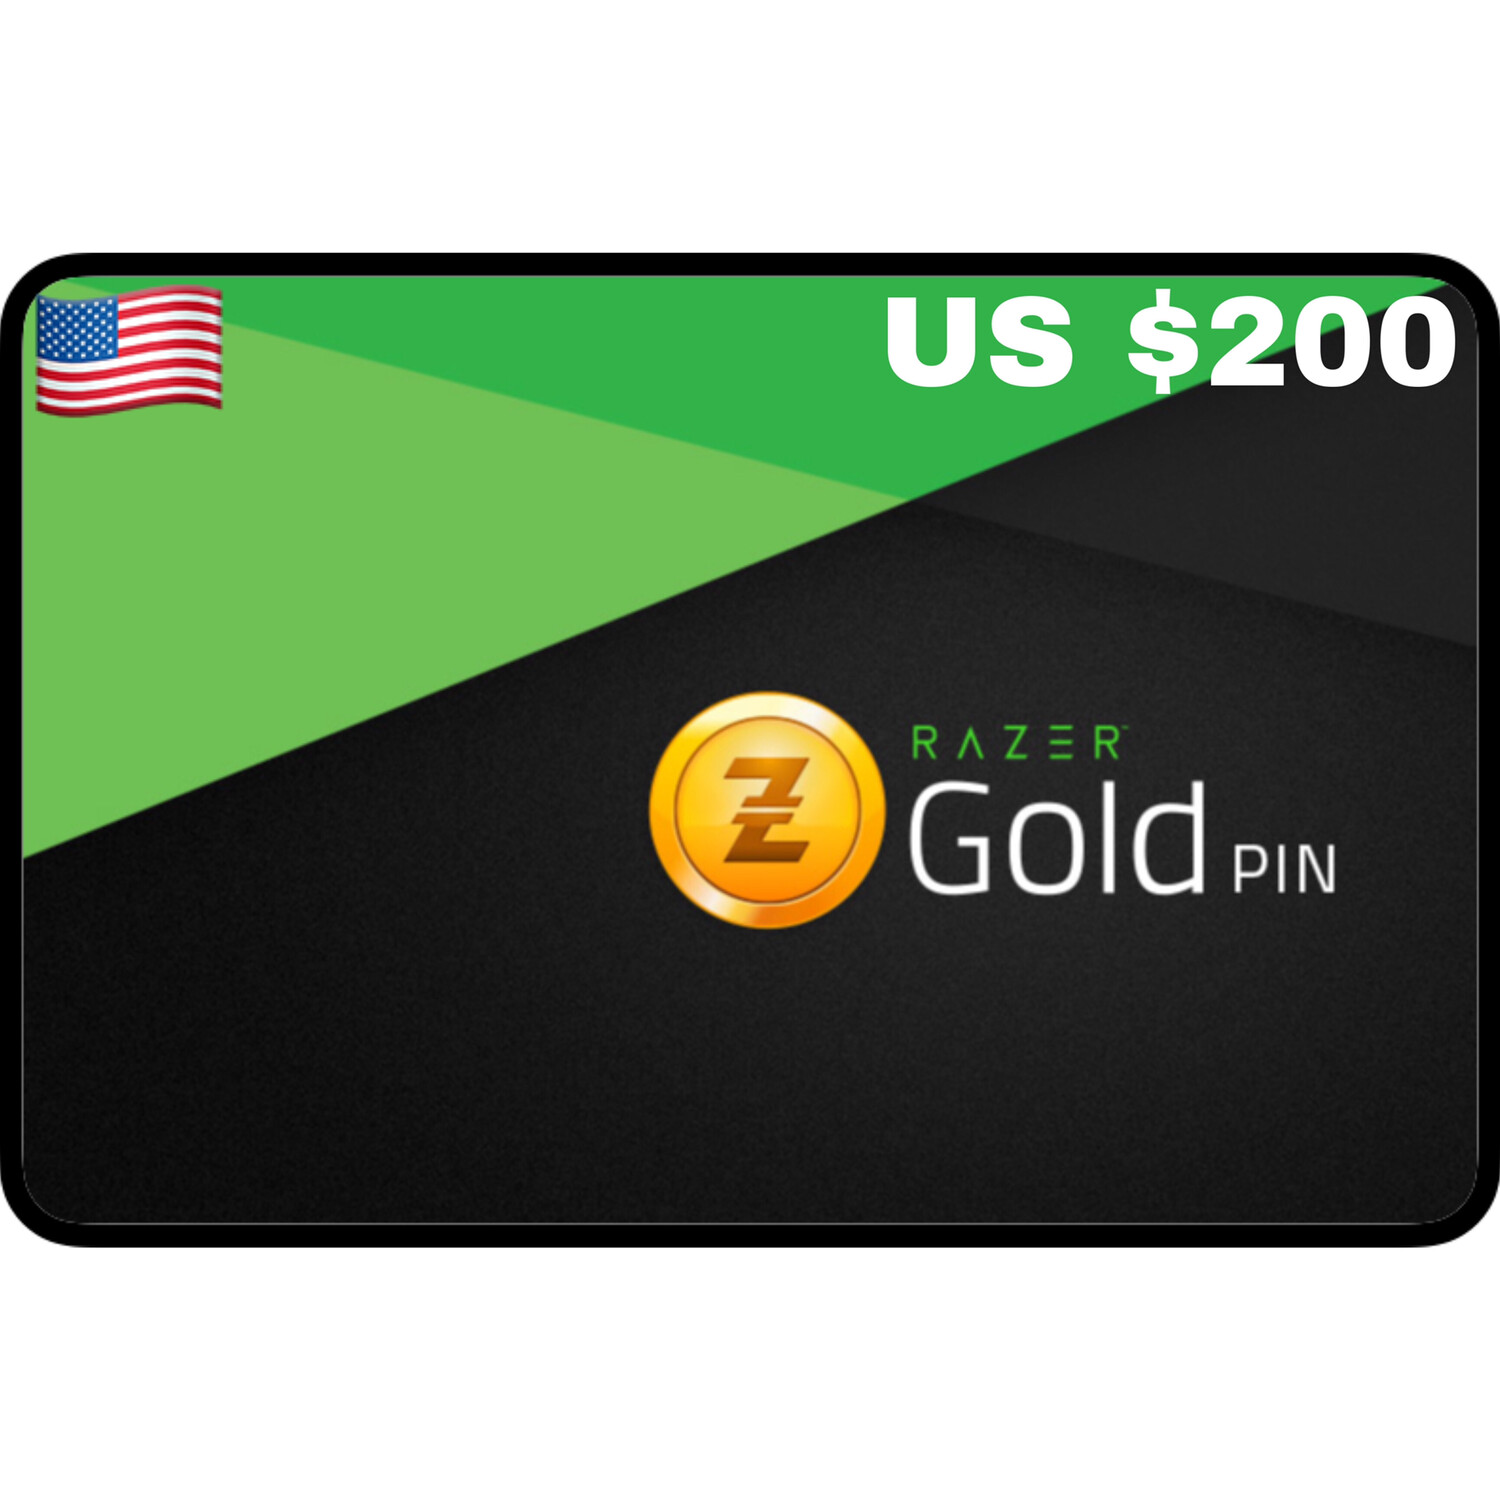 Razer Gold Pin US $200